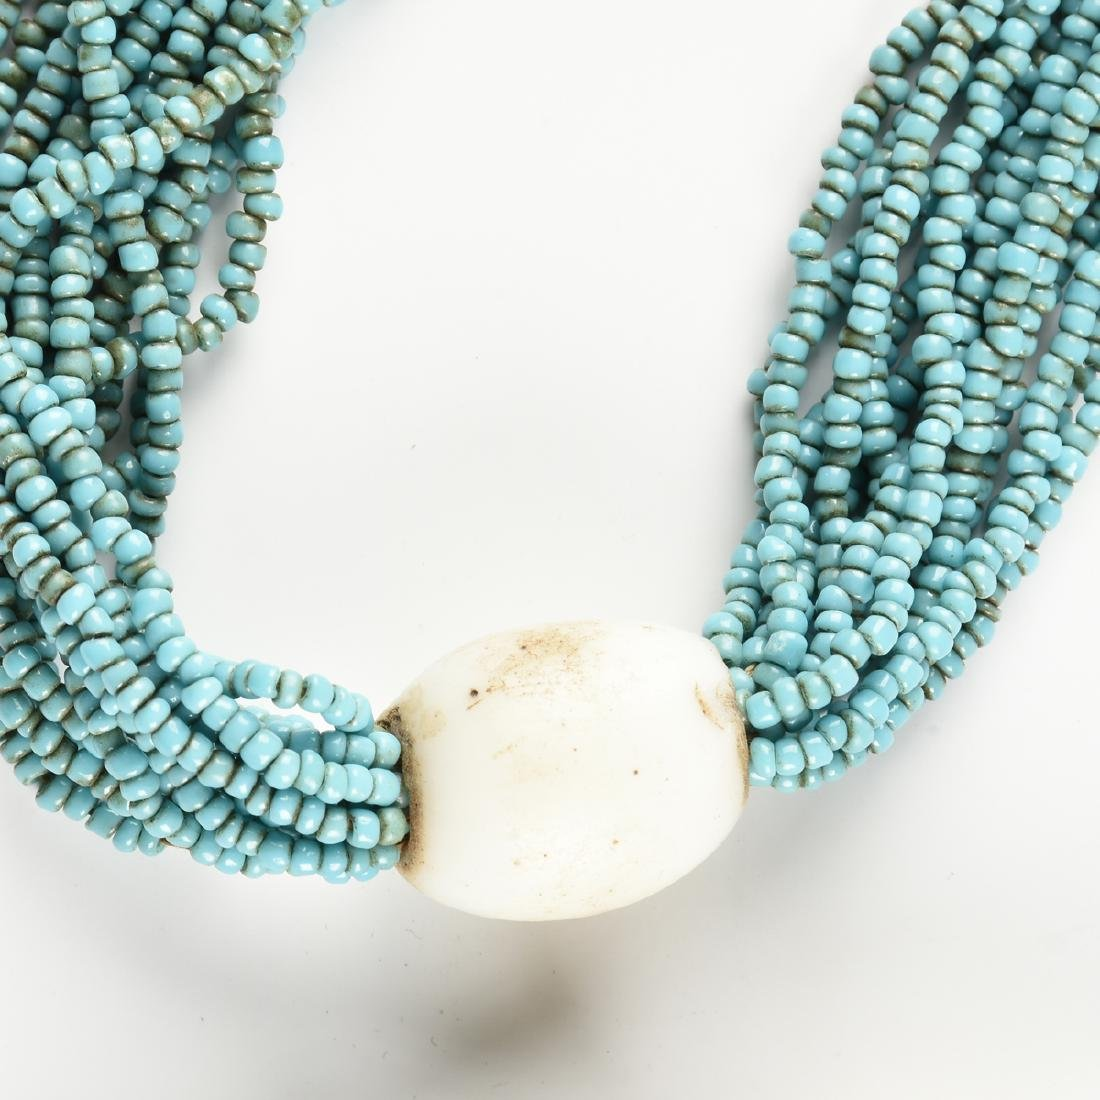 A WEST AFRICAN MILK GLASS, SEED BEAD AND COWRIE SHELL - 4